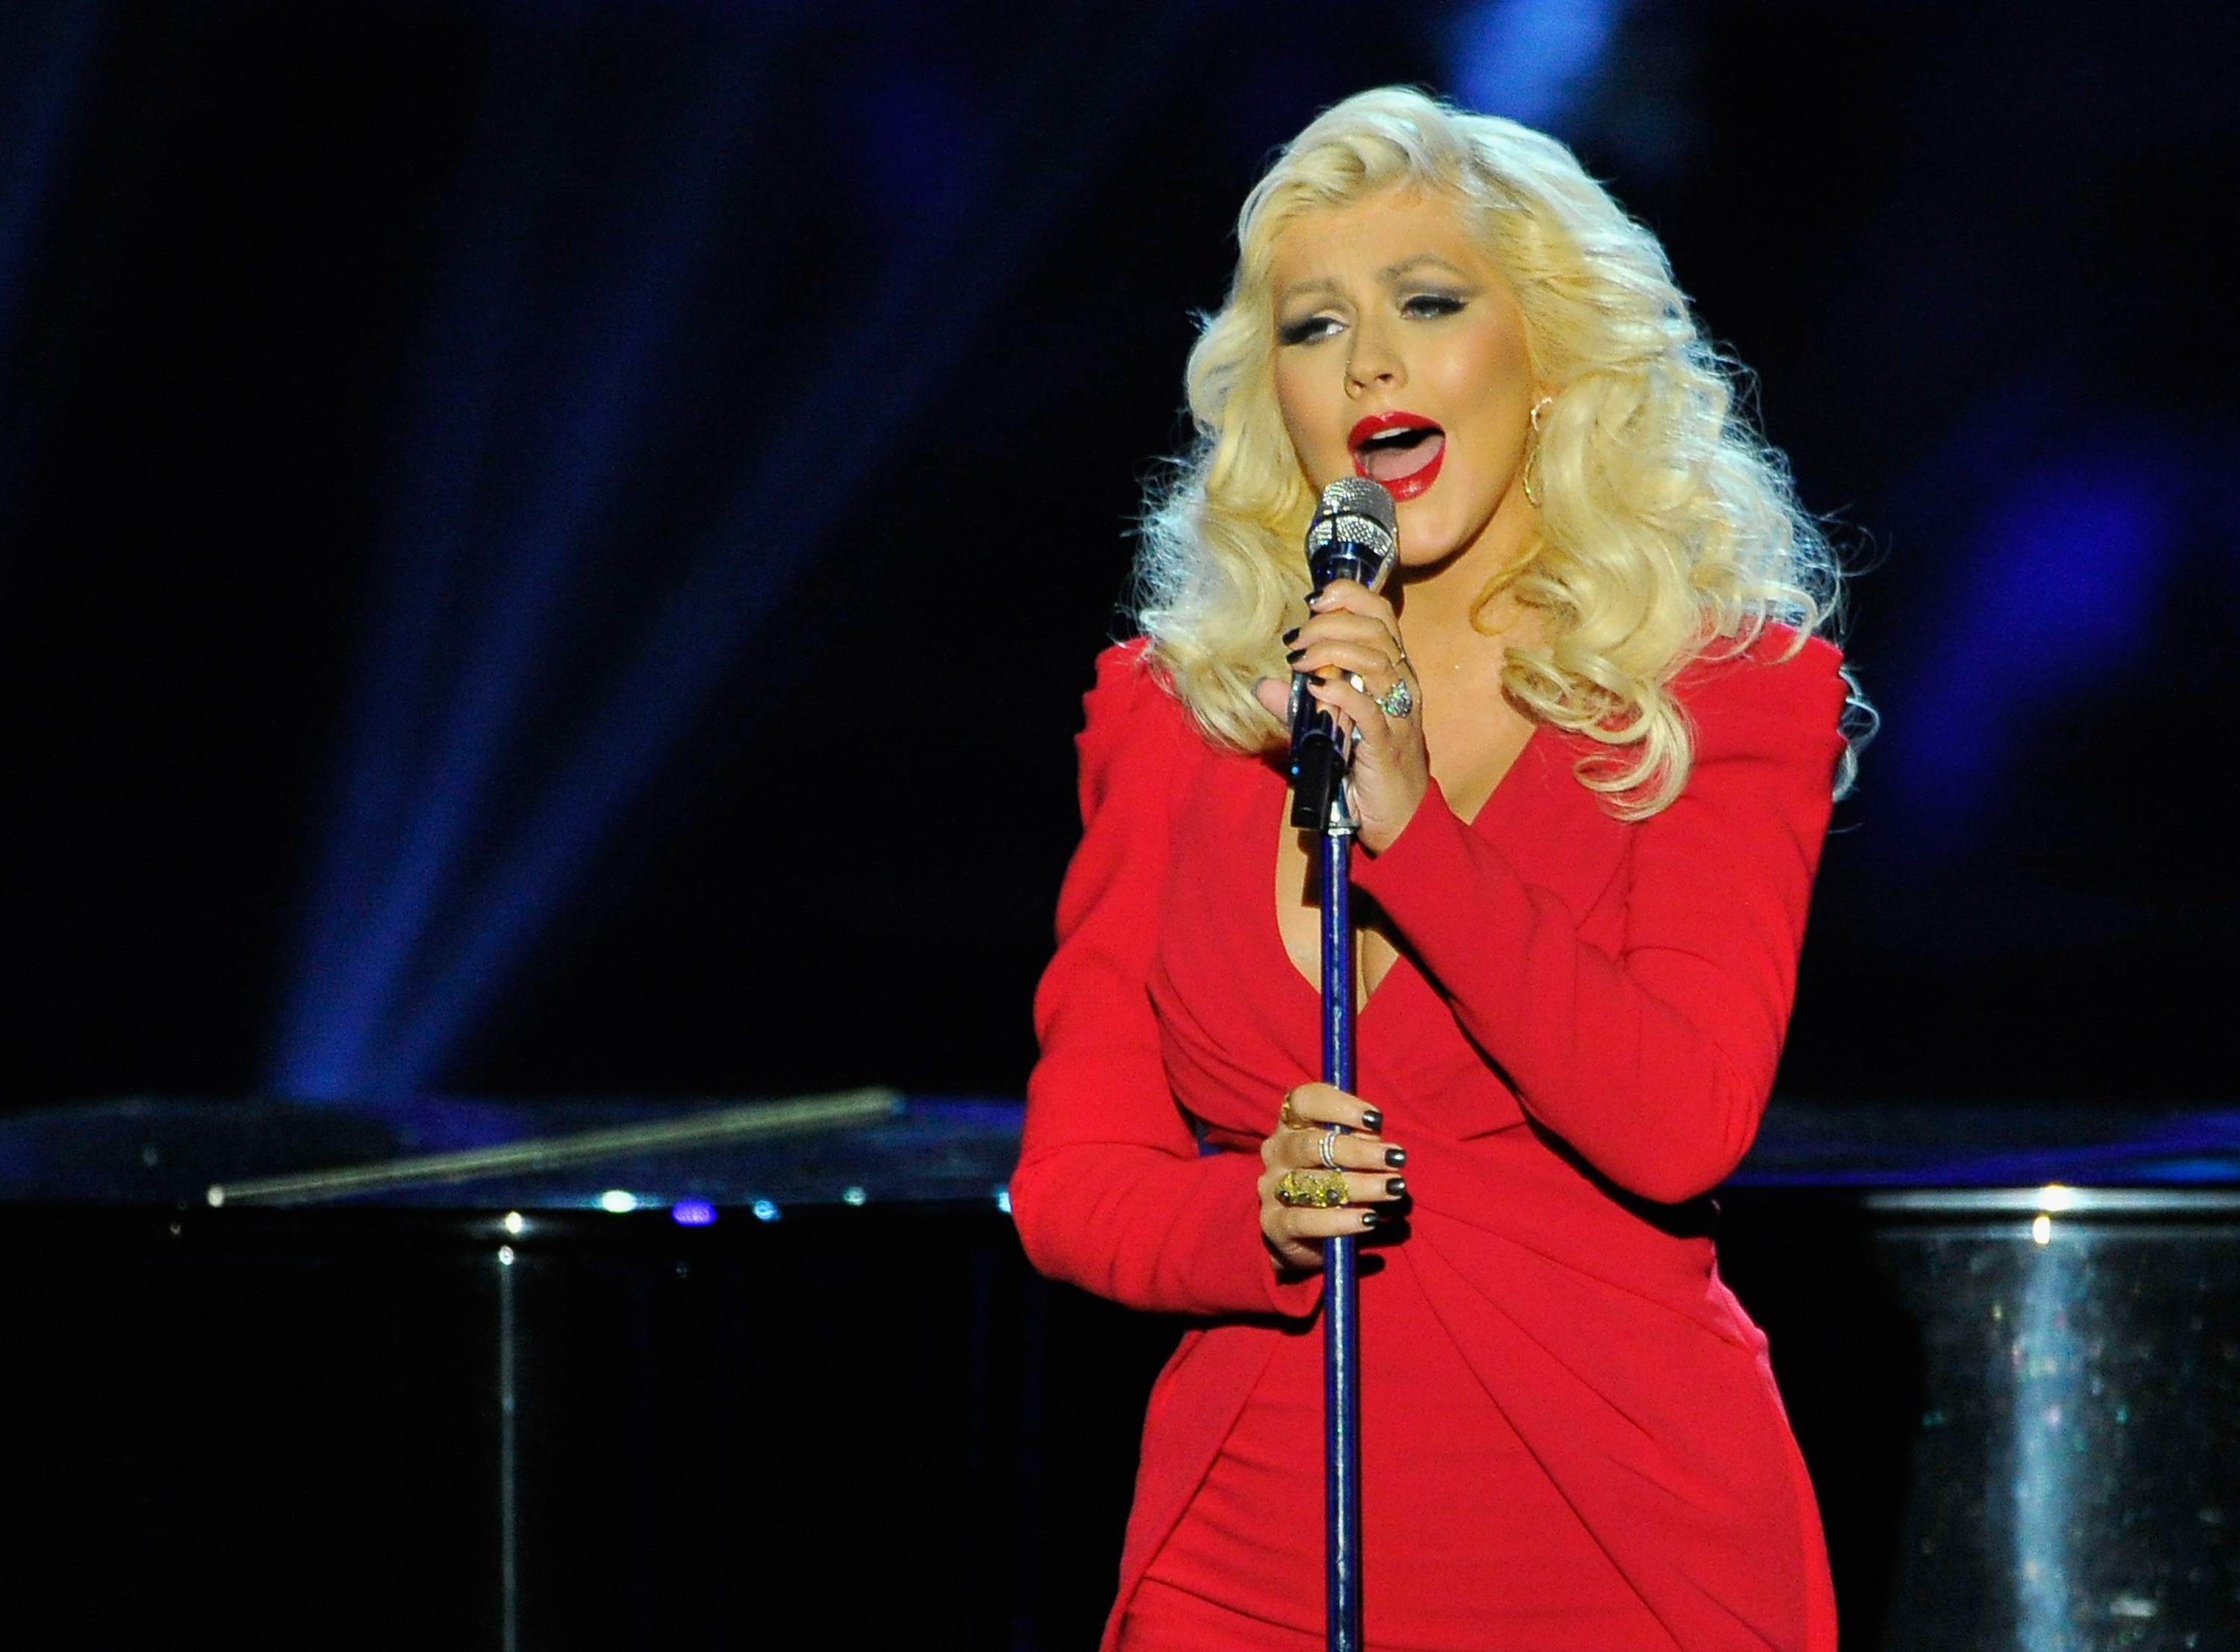 MOUNTAIN VIEW, CA - NOVEMBER 09:  Singer Christina Aguilera performs onstage during the Breakthrough Prize Awards Ceremony Ho